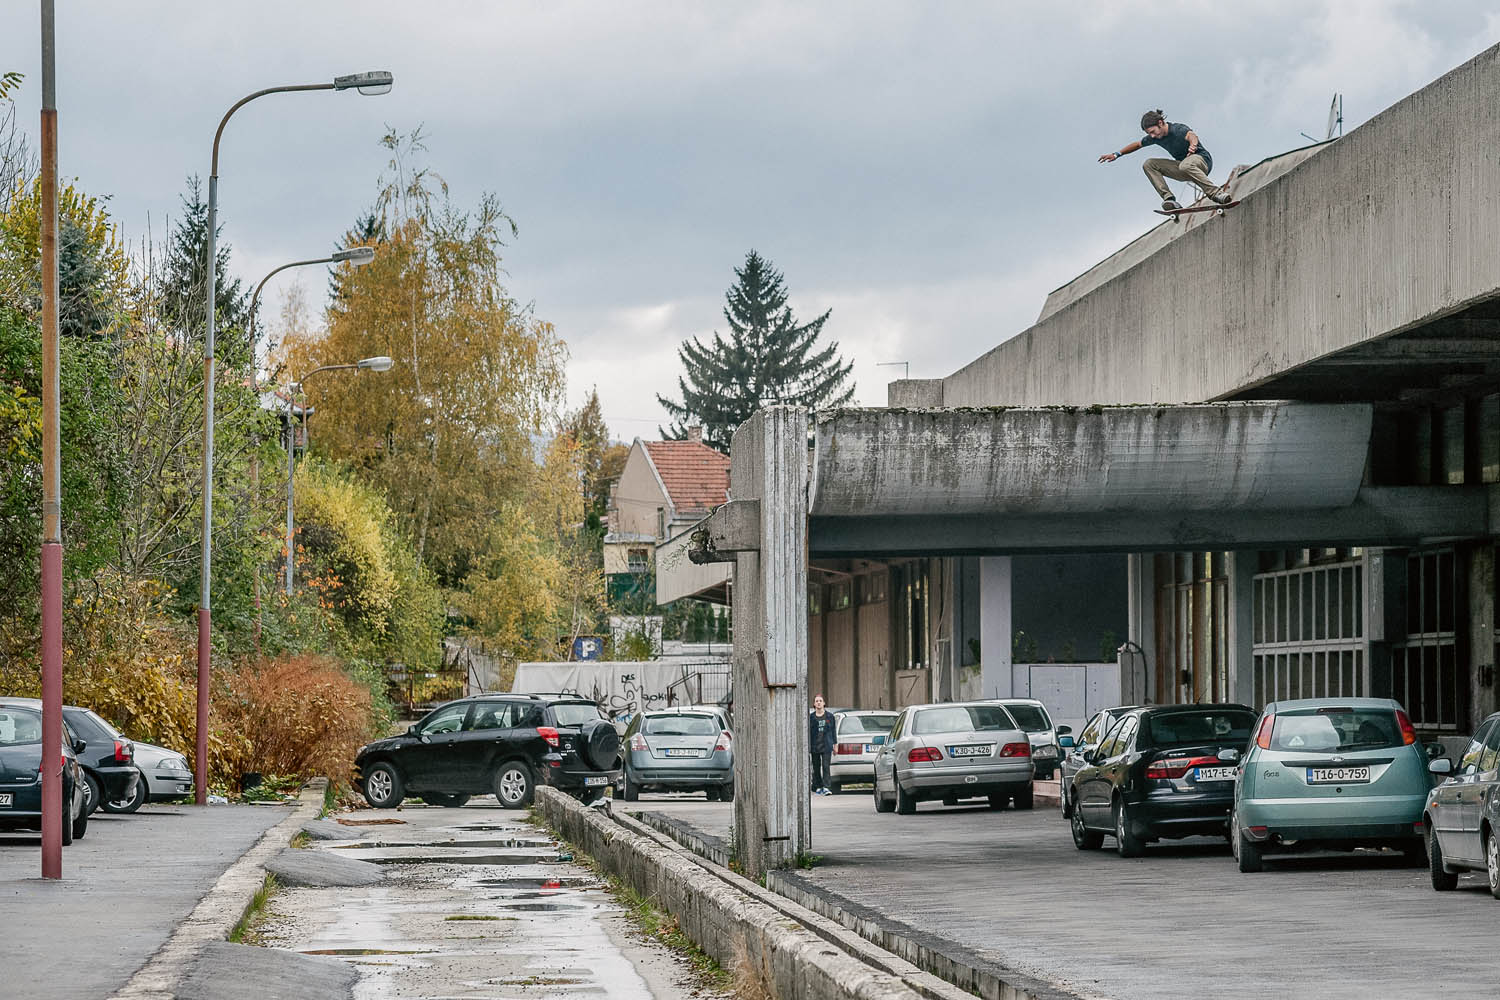 Gosha_Konyshev_roof_to_roof_drop_in_Saraevo_Bosnia